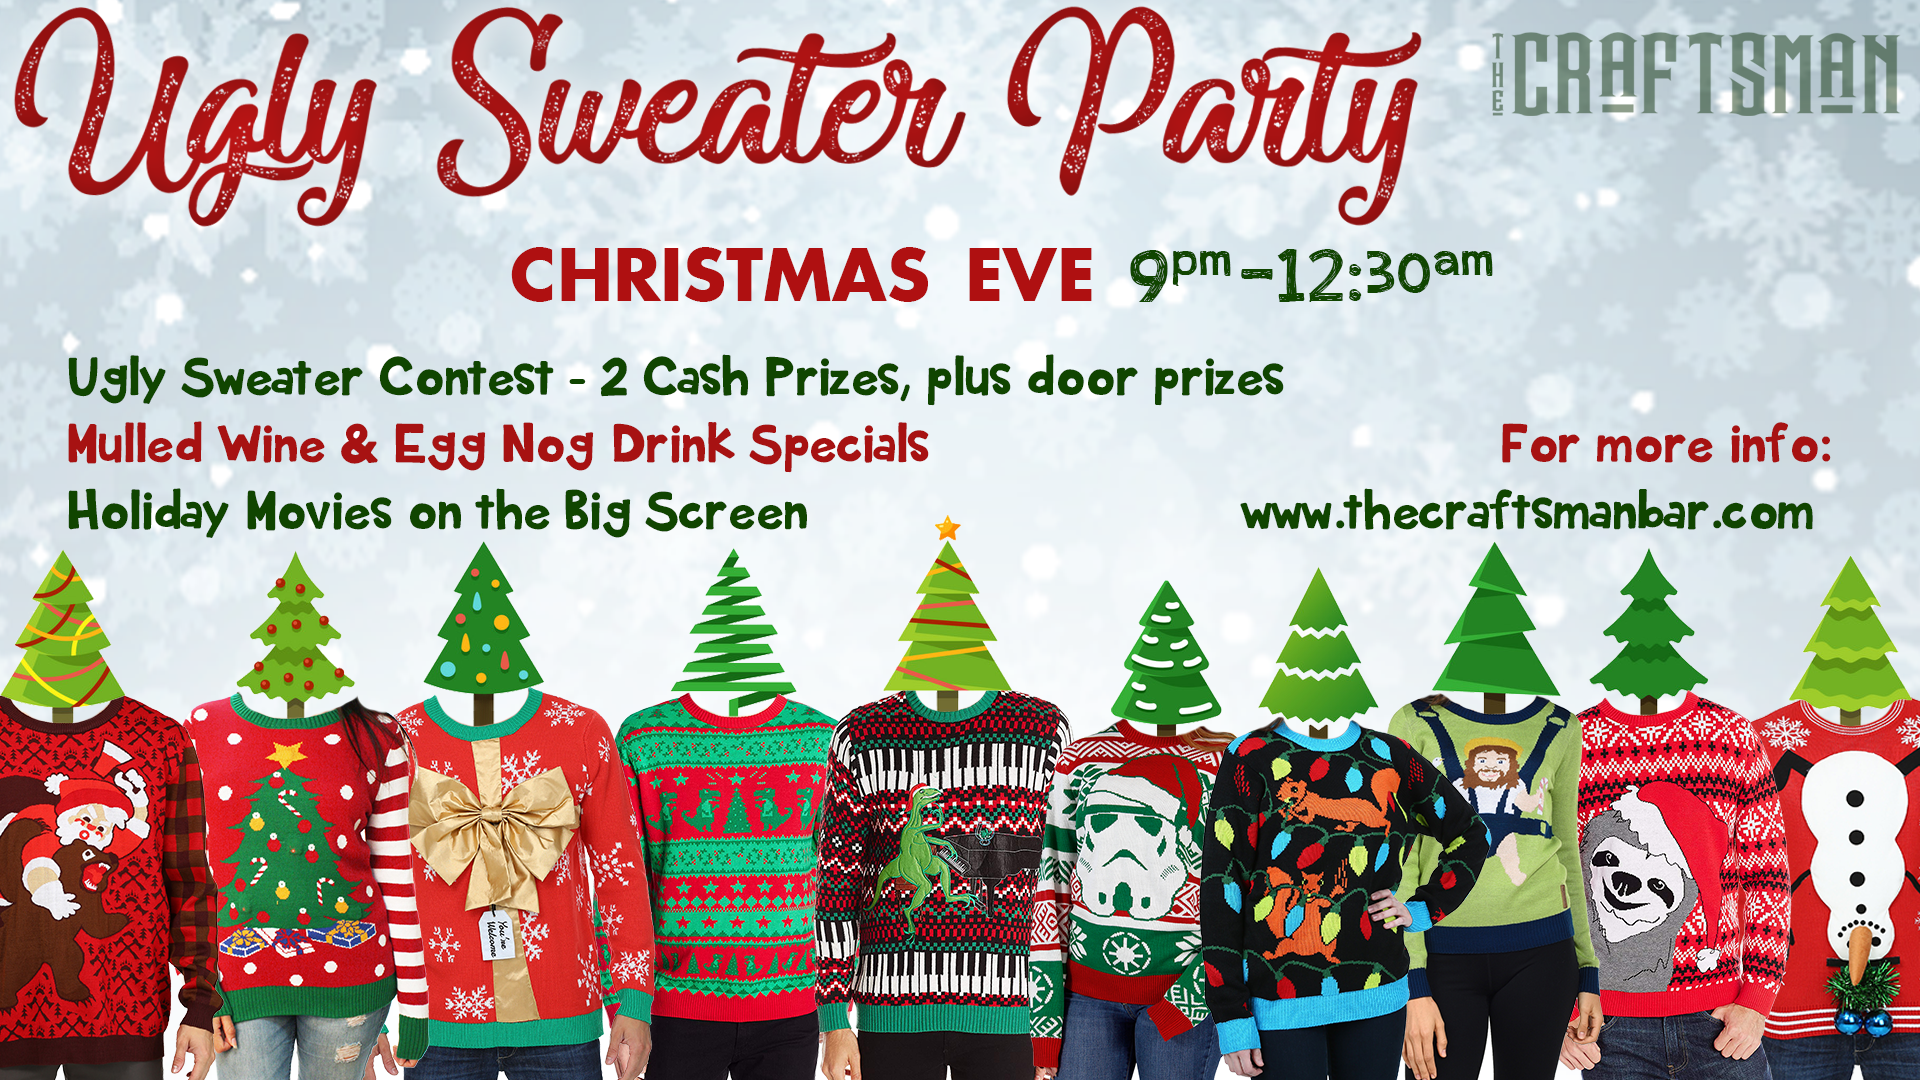 Christmas Eve Ugly Sweater Party at The Craftsman Bar and Kitchen